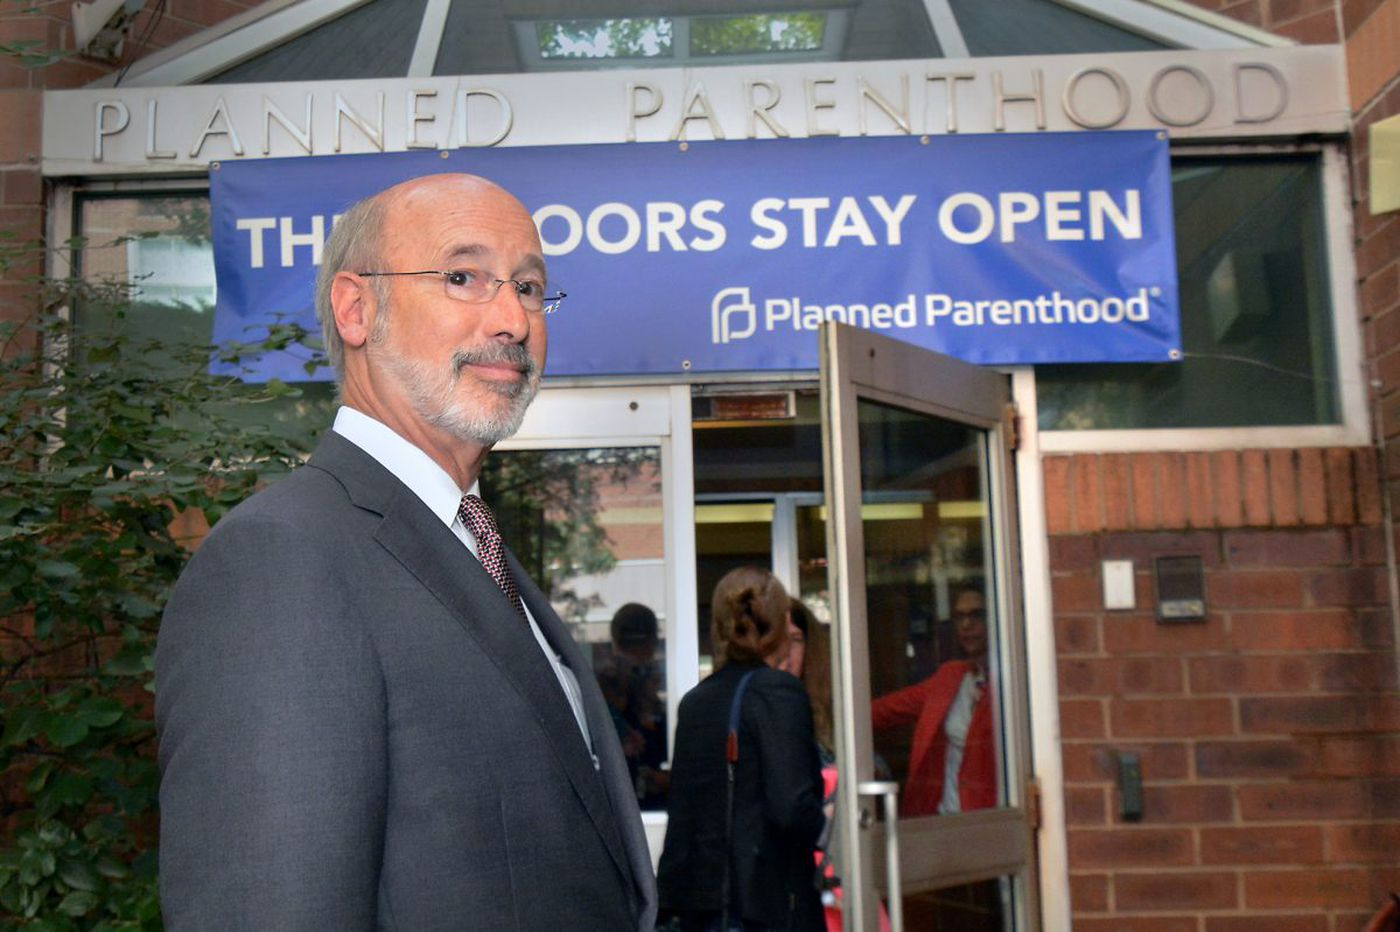 Gov. Wolf visits Philly's Planned Parenthood to offer support